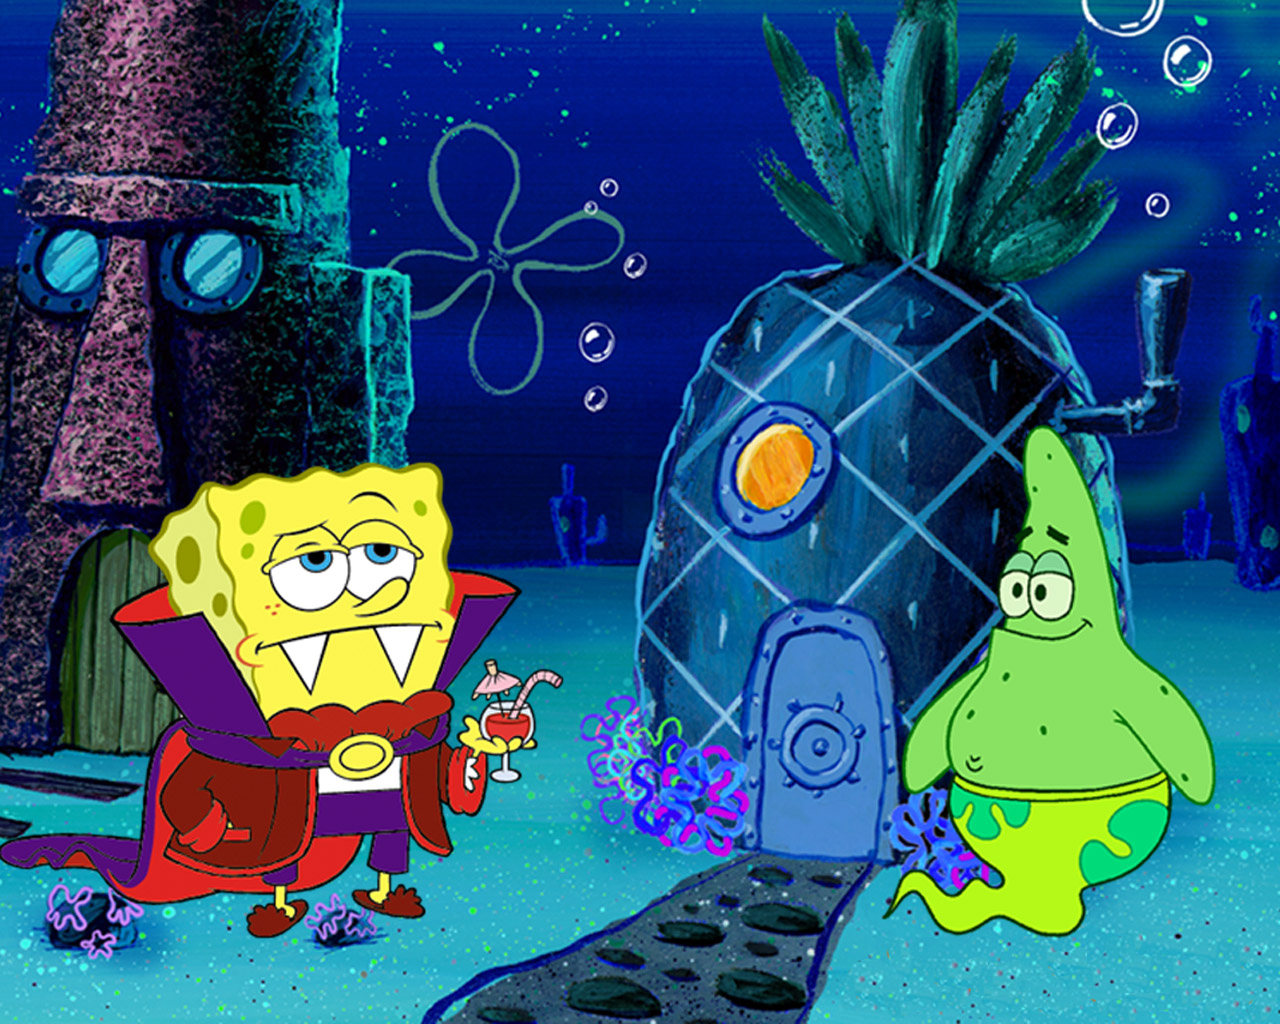 image spongebob halloween costumes wallpaper desktop background